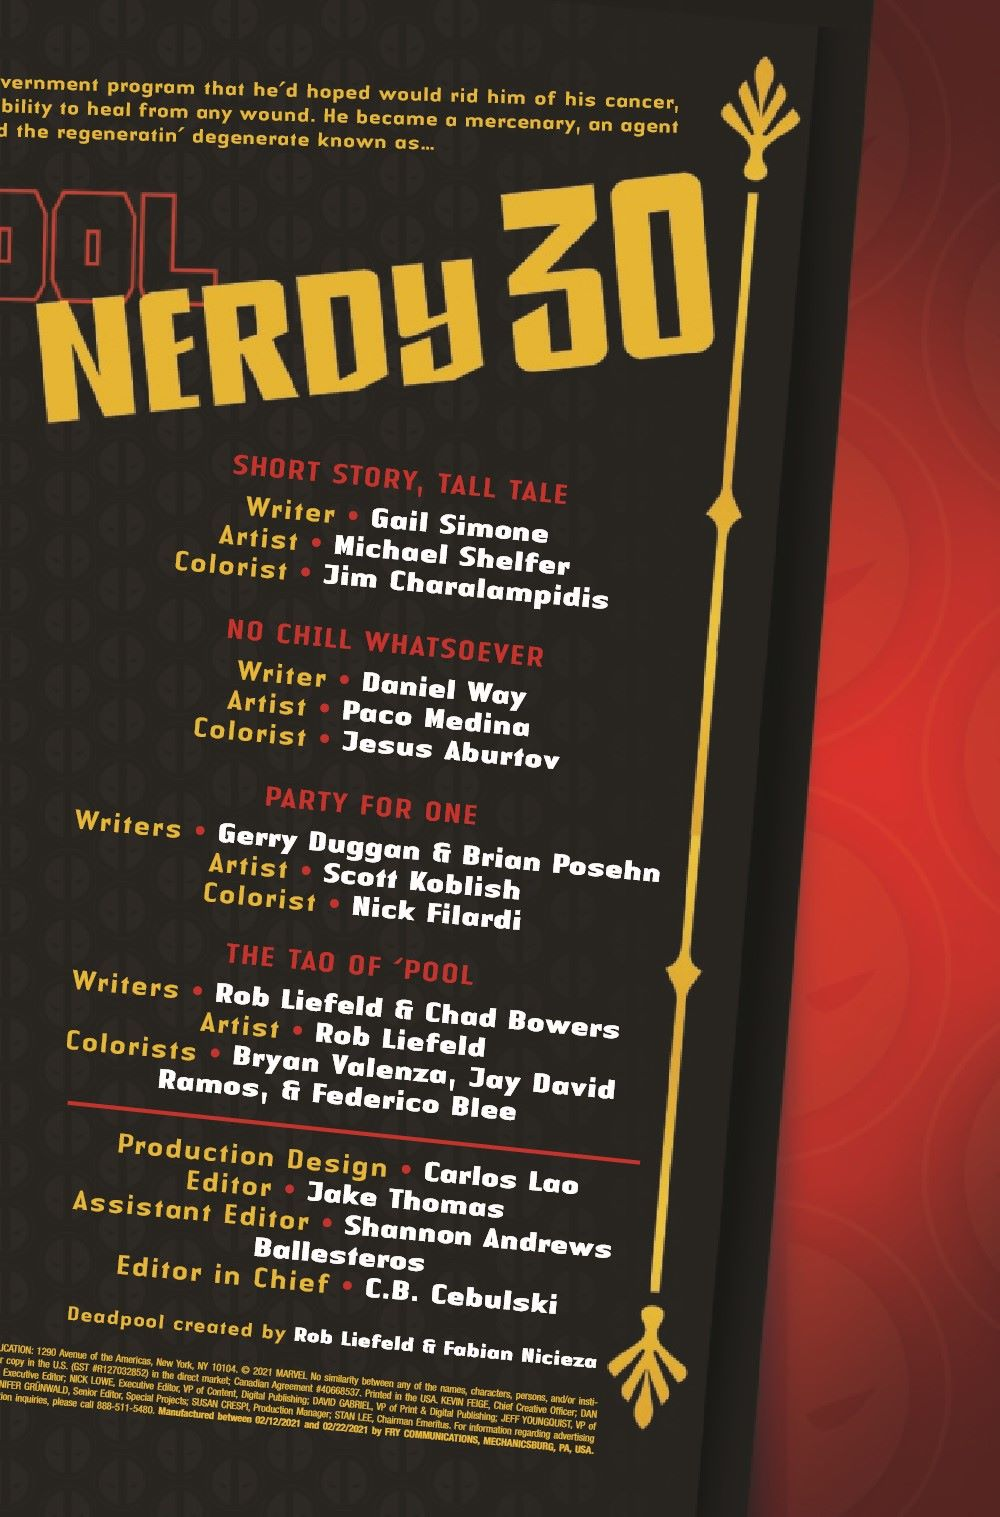 DPOOLNERDY302021001_Preview-3 ComicList Previews: DEADPOOL NERDY 30 #1